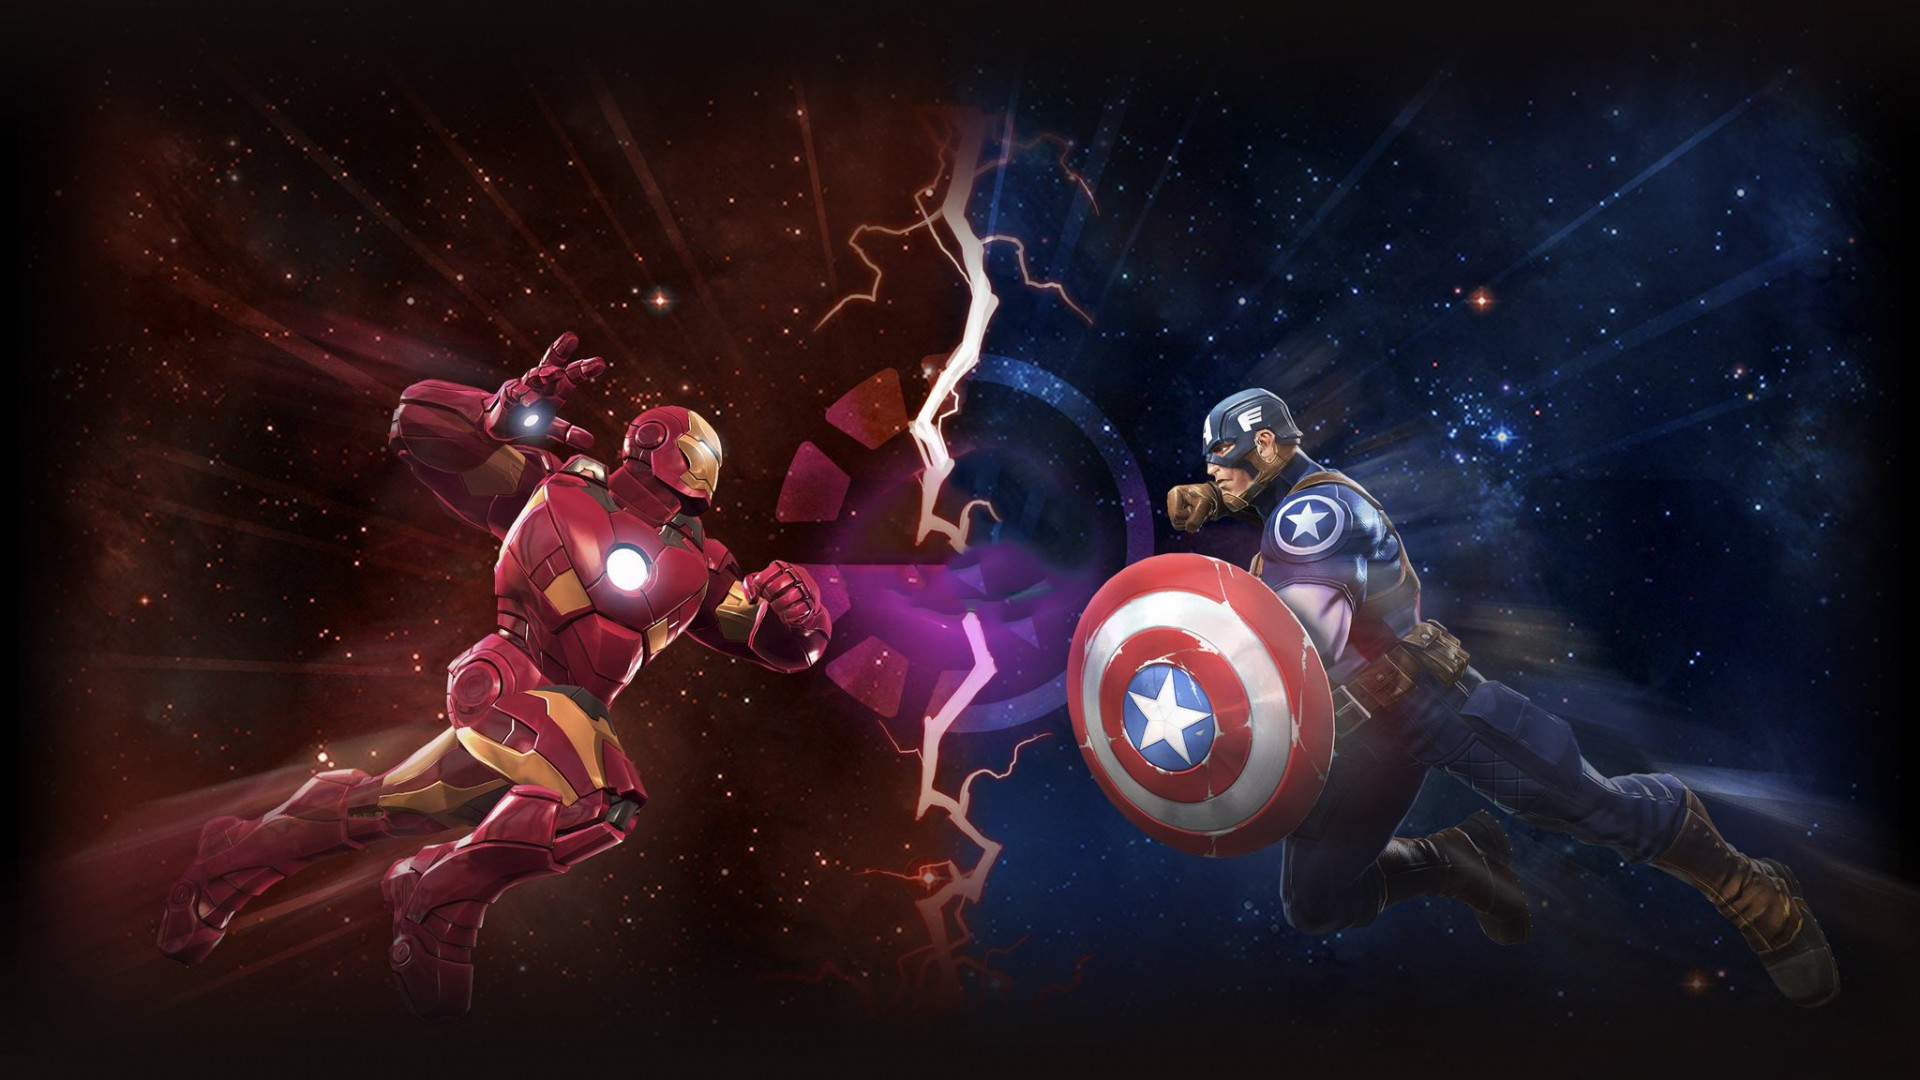 Iron Man vs Captain America Artwork Wallpaper   Wallpaper Stream 1920x1080